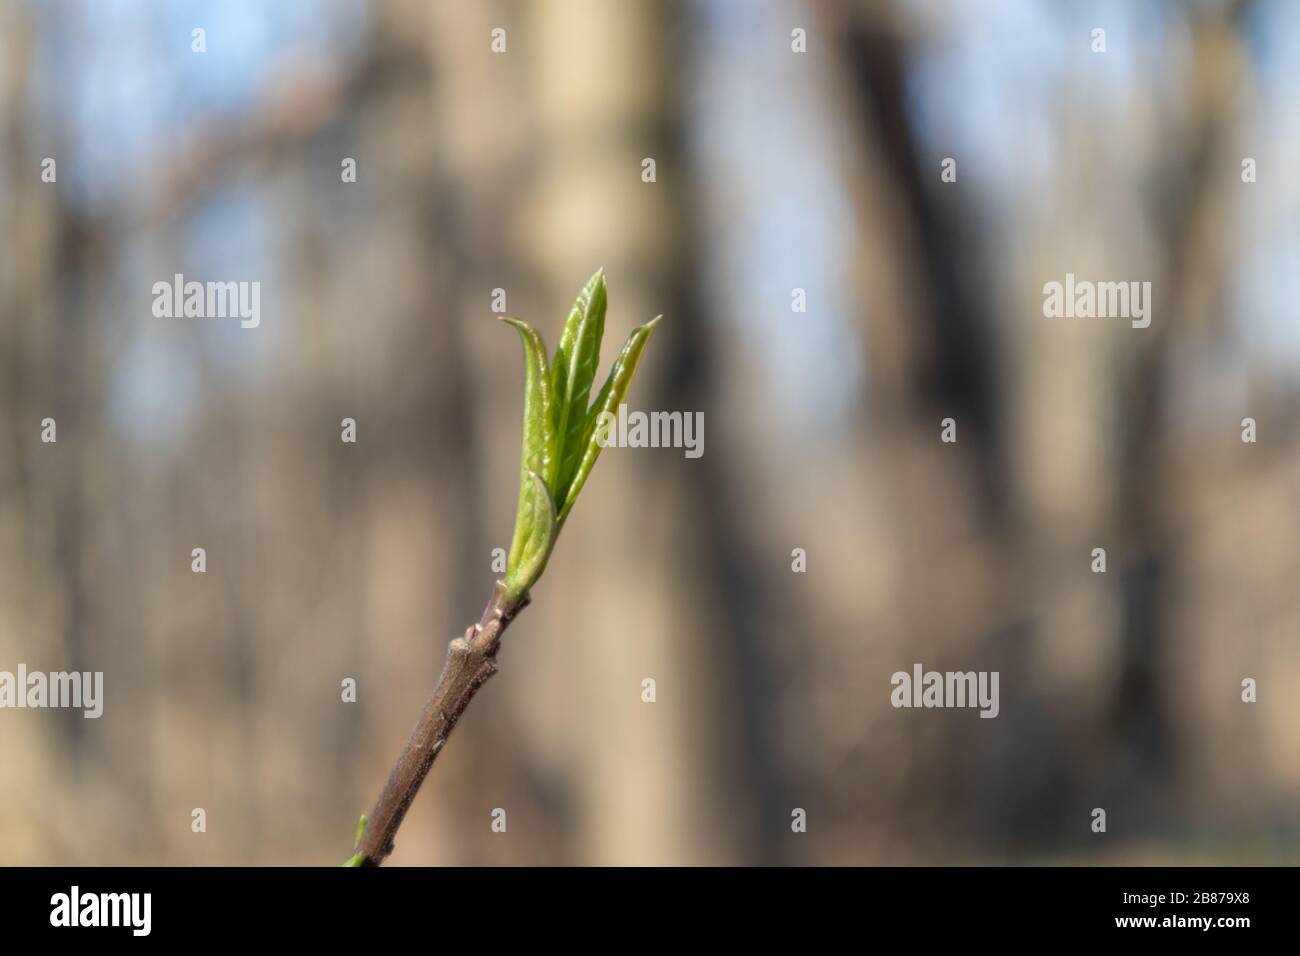 Spring small green leaves bud sprout tree branch in forest. Sunny nature young plant awakening bright light colors Stock Photo